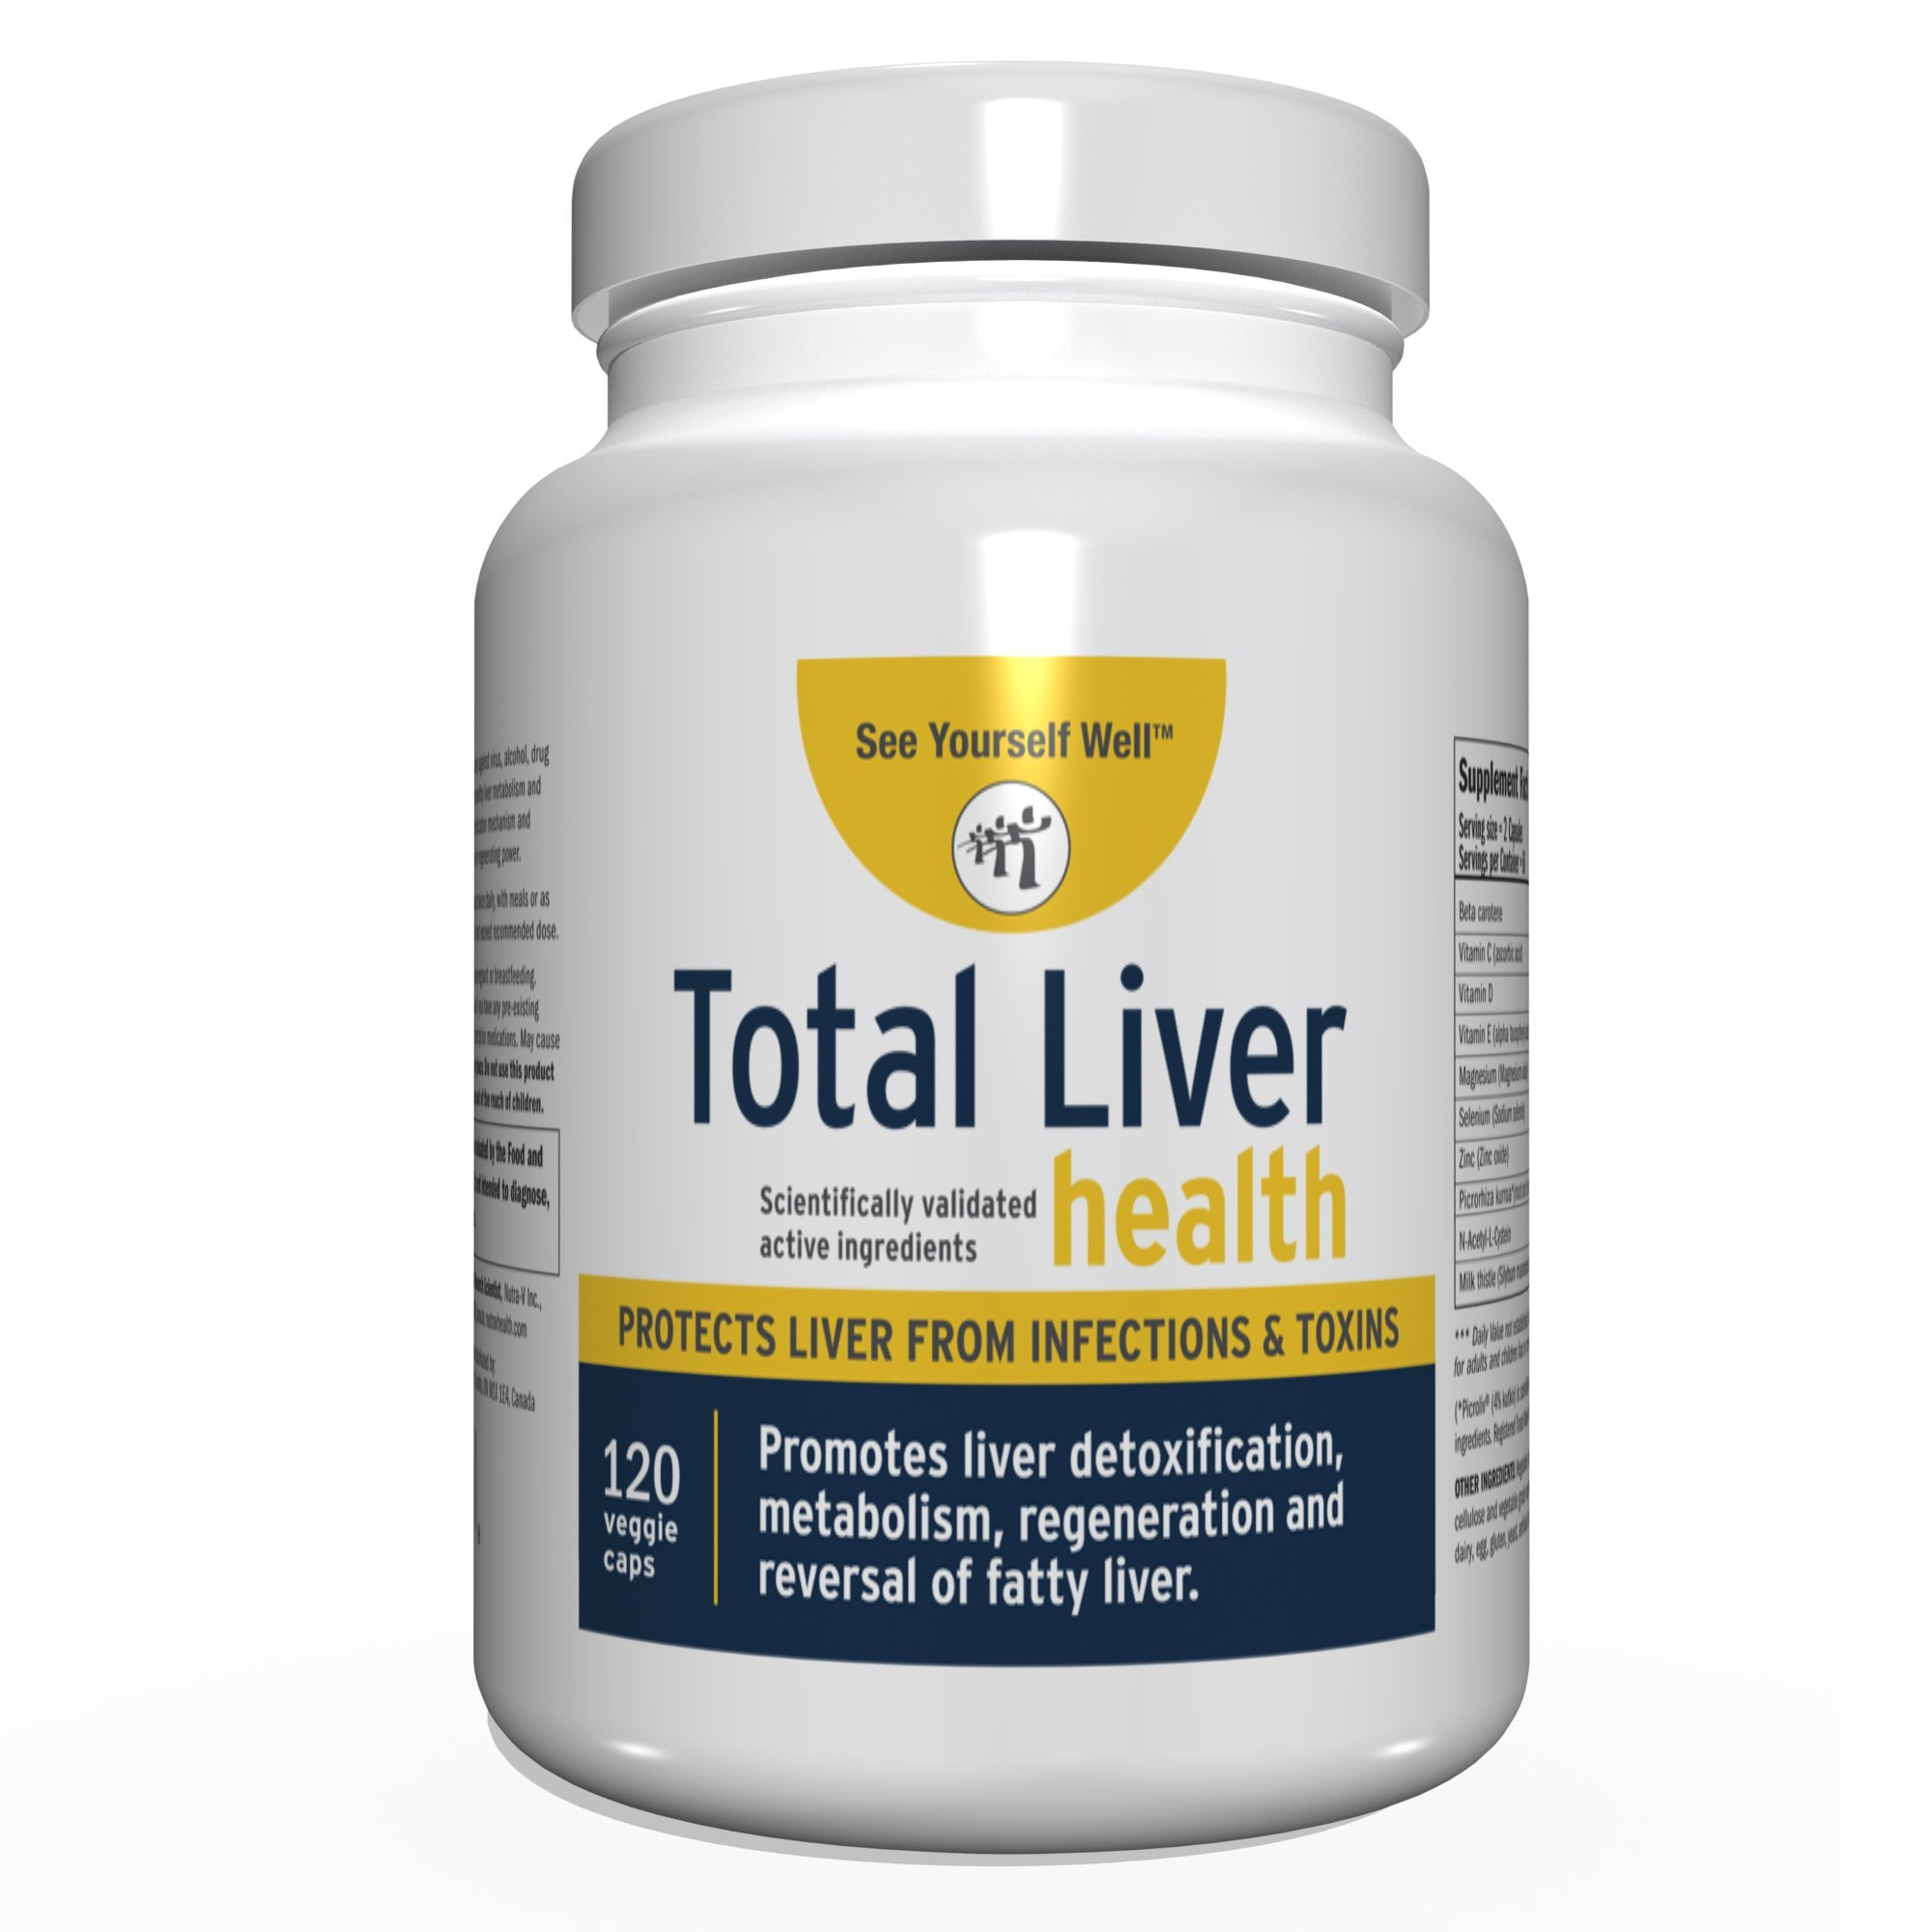 Total Liver Health: Liver Cleanse, Detox, Regeneration, Fatty Liver Reversal. Protection from Infections & Toxins. Trademarked Ingredient Picroliv. by See Yourself Well